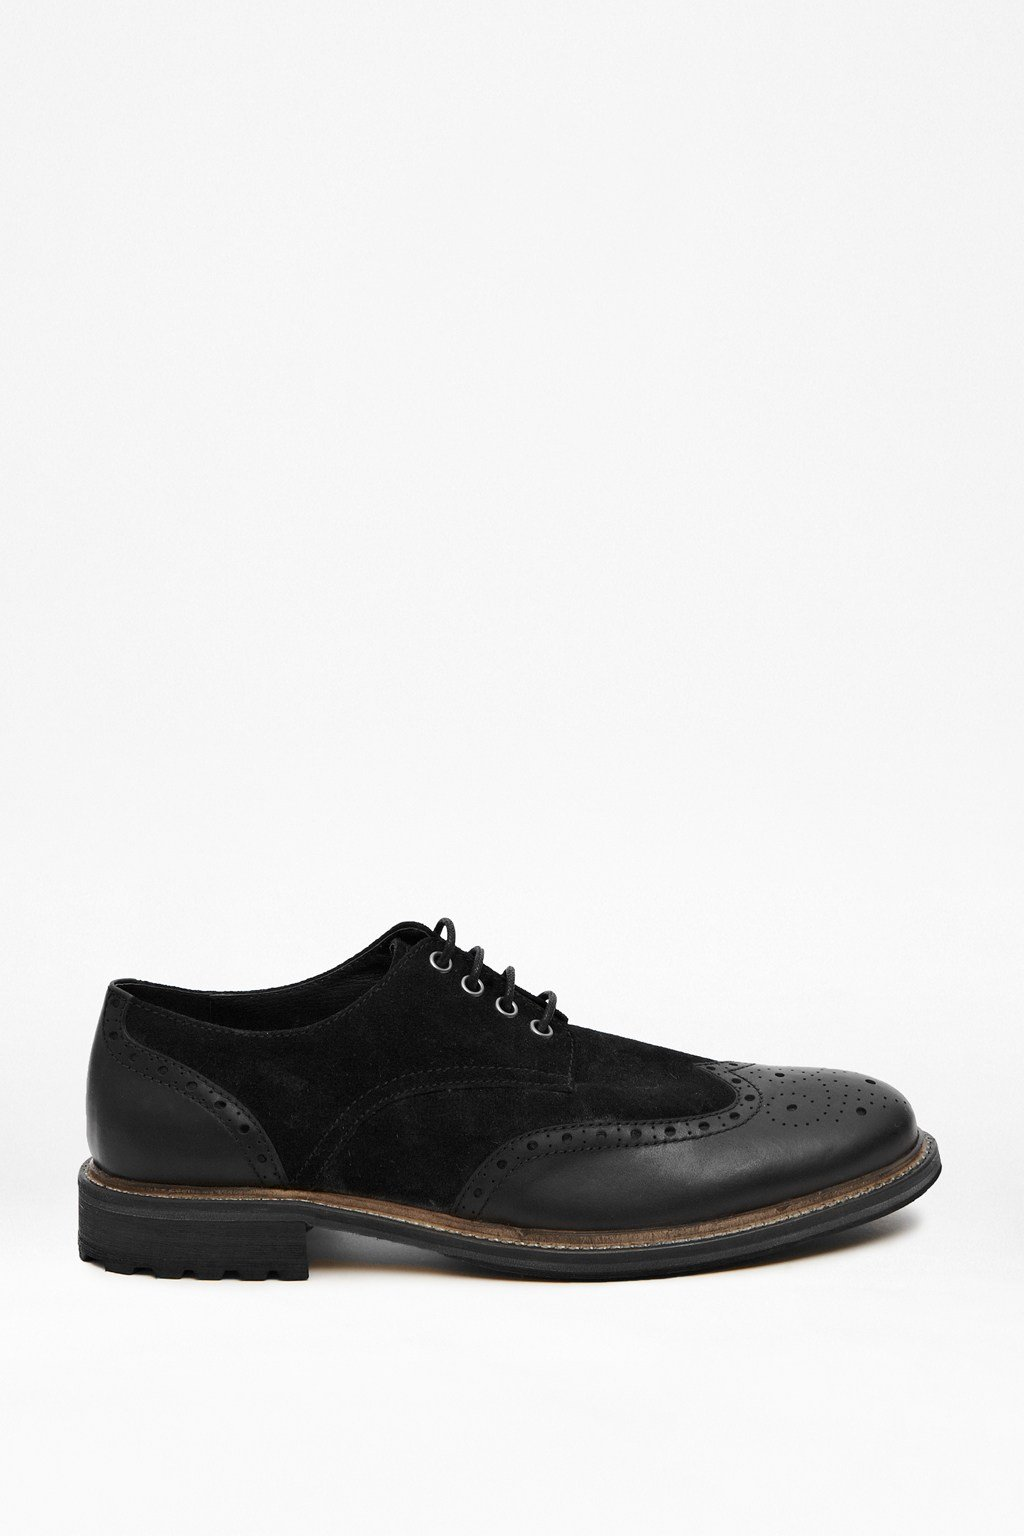 Flynn Leather and Suede Brogues